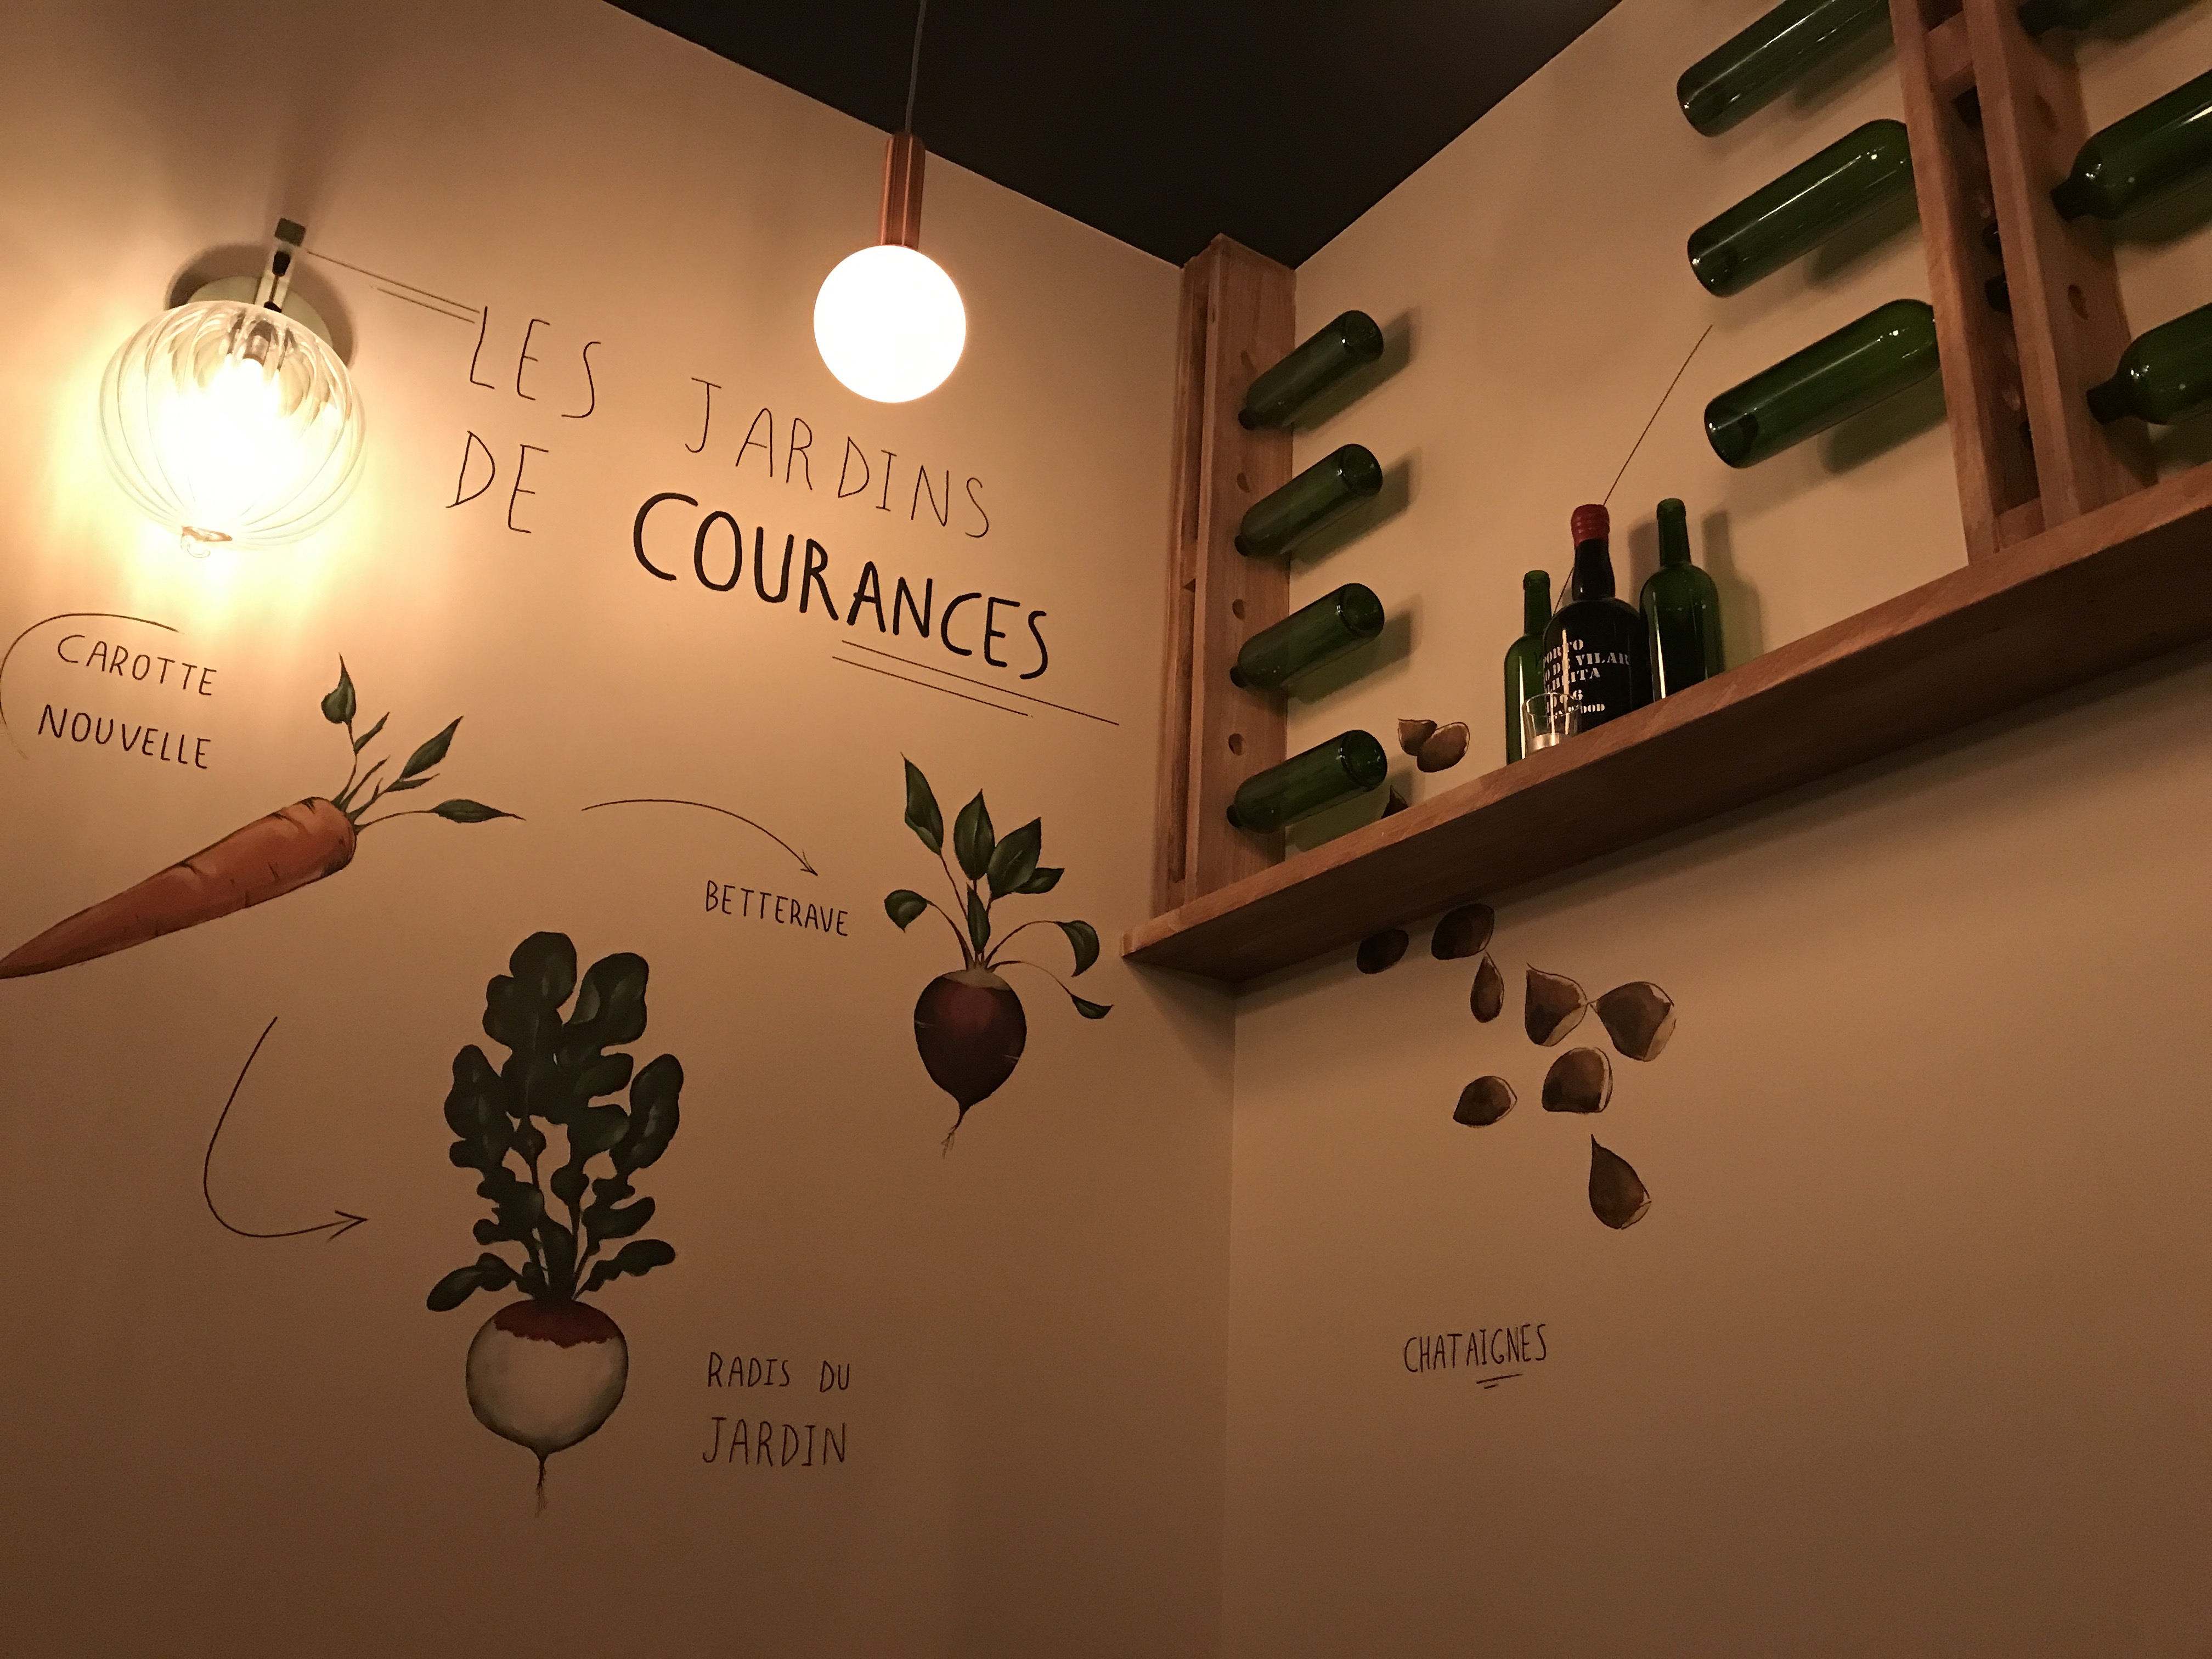 Tomy & Co. restaurant in Paris | parisbymouth.com